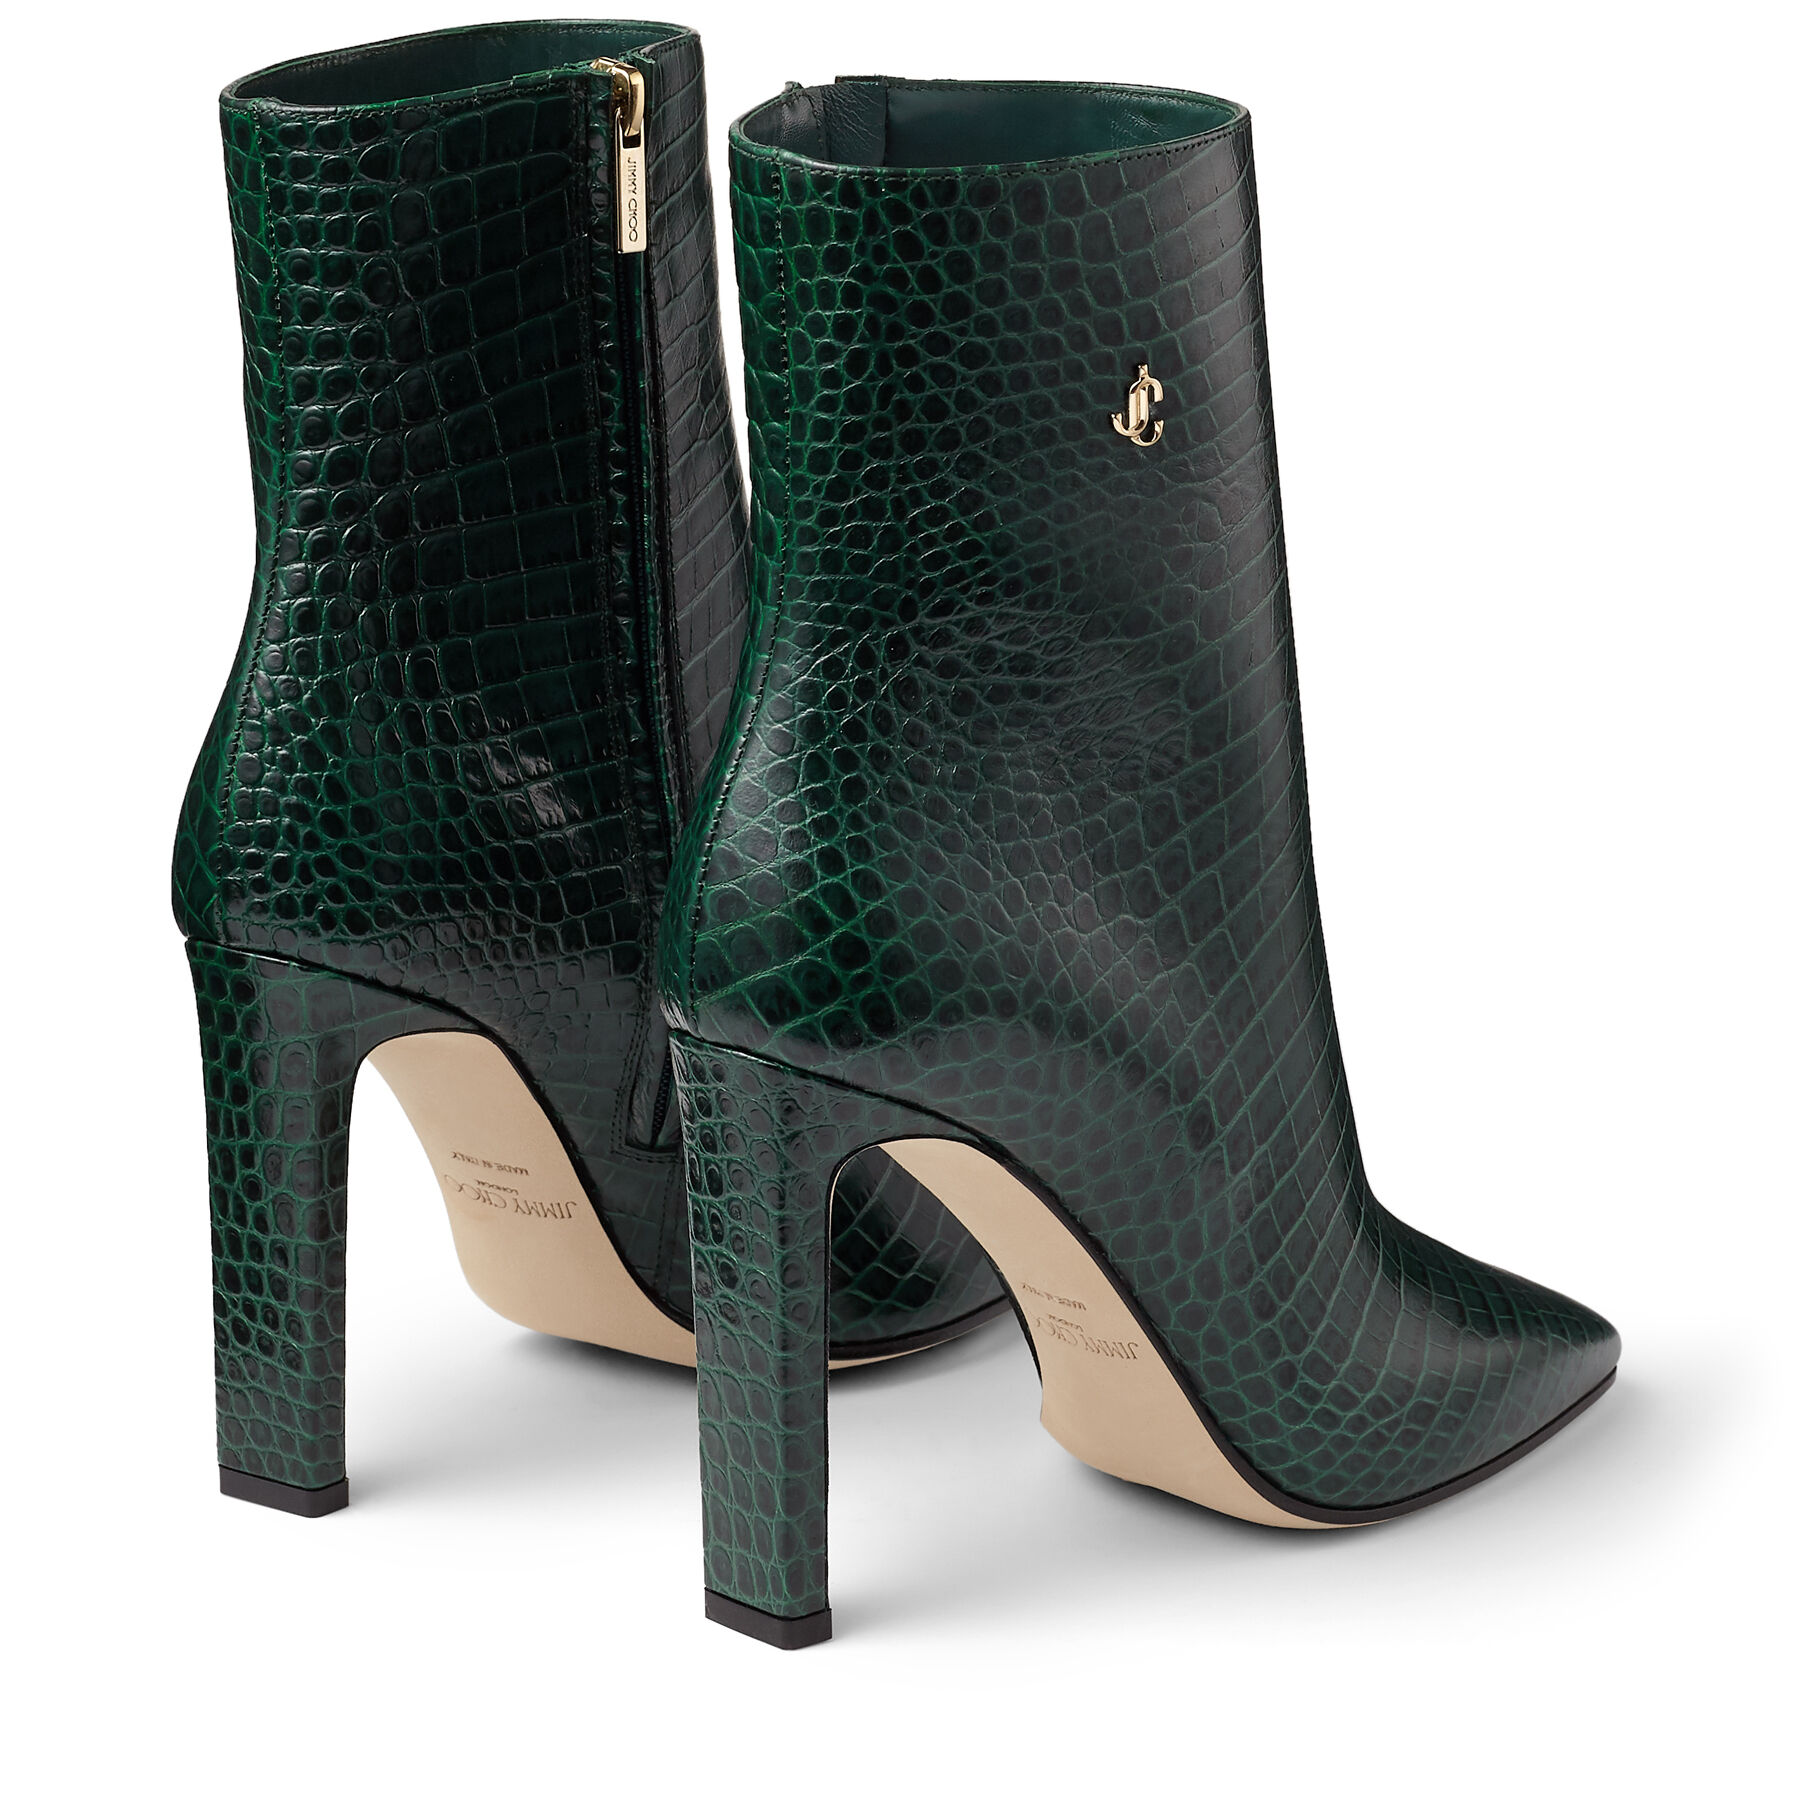 Green Croc Embossed Leather Ankle Boots